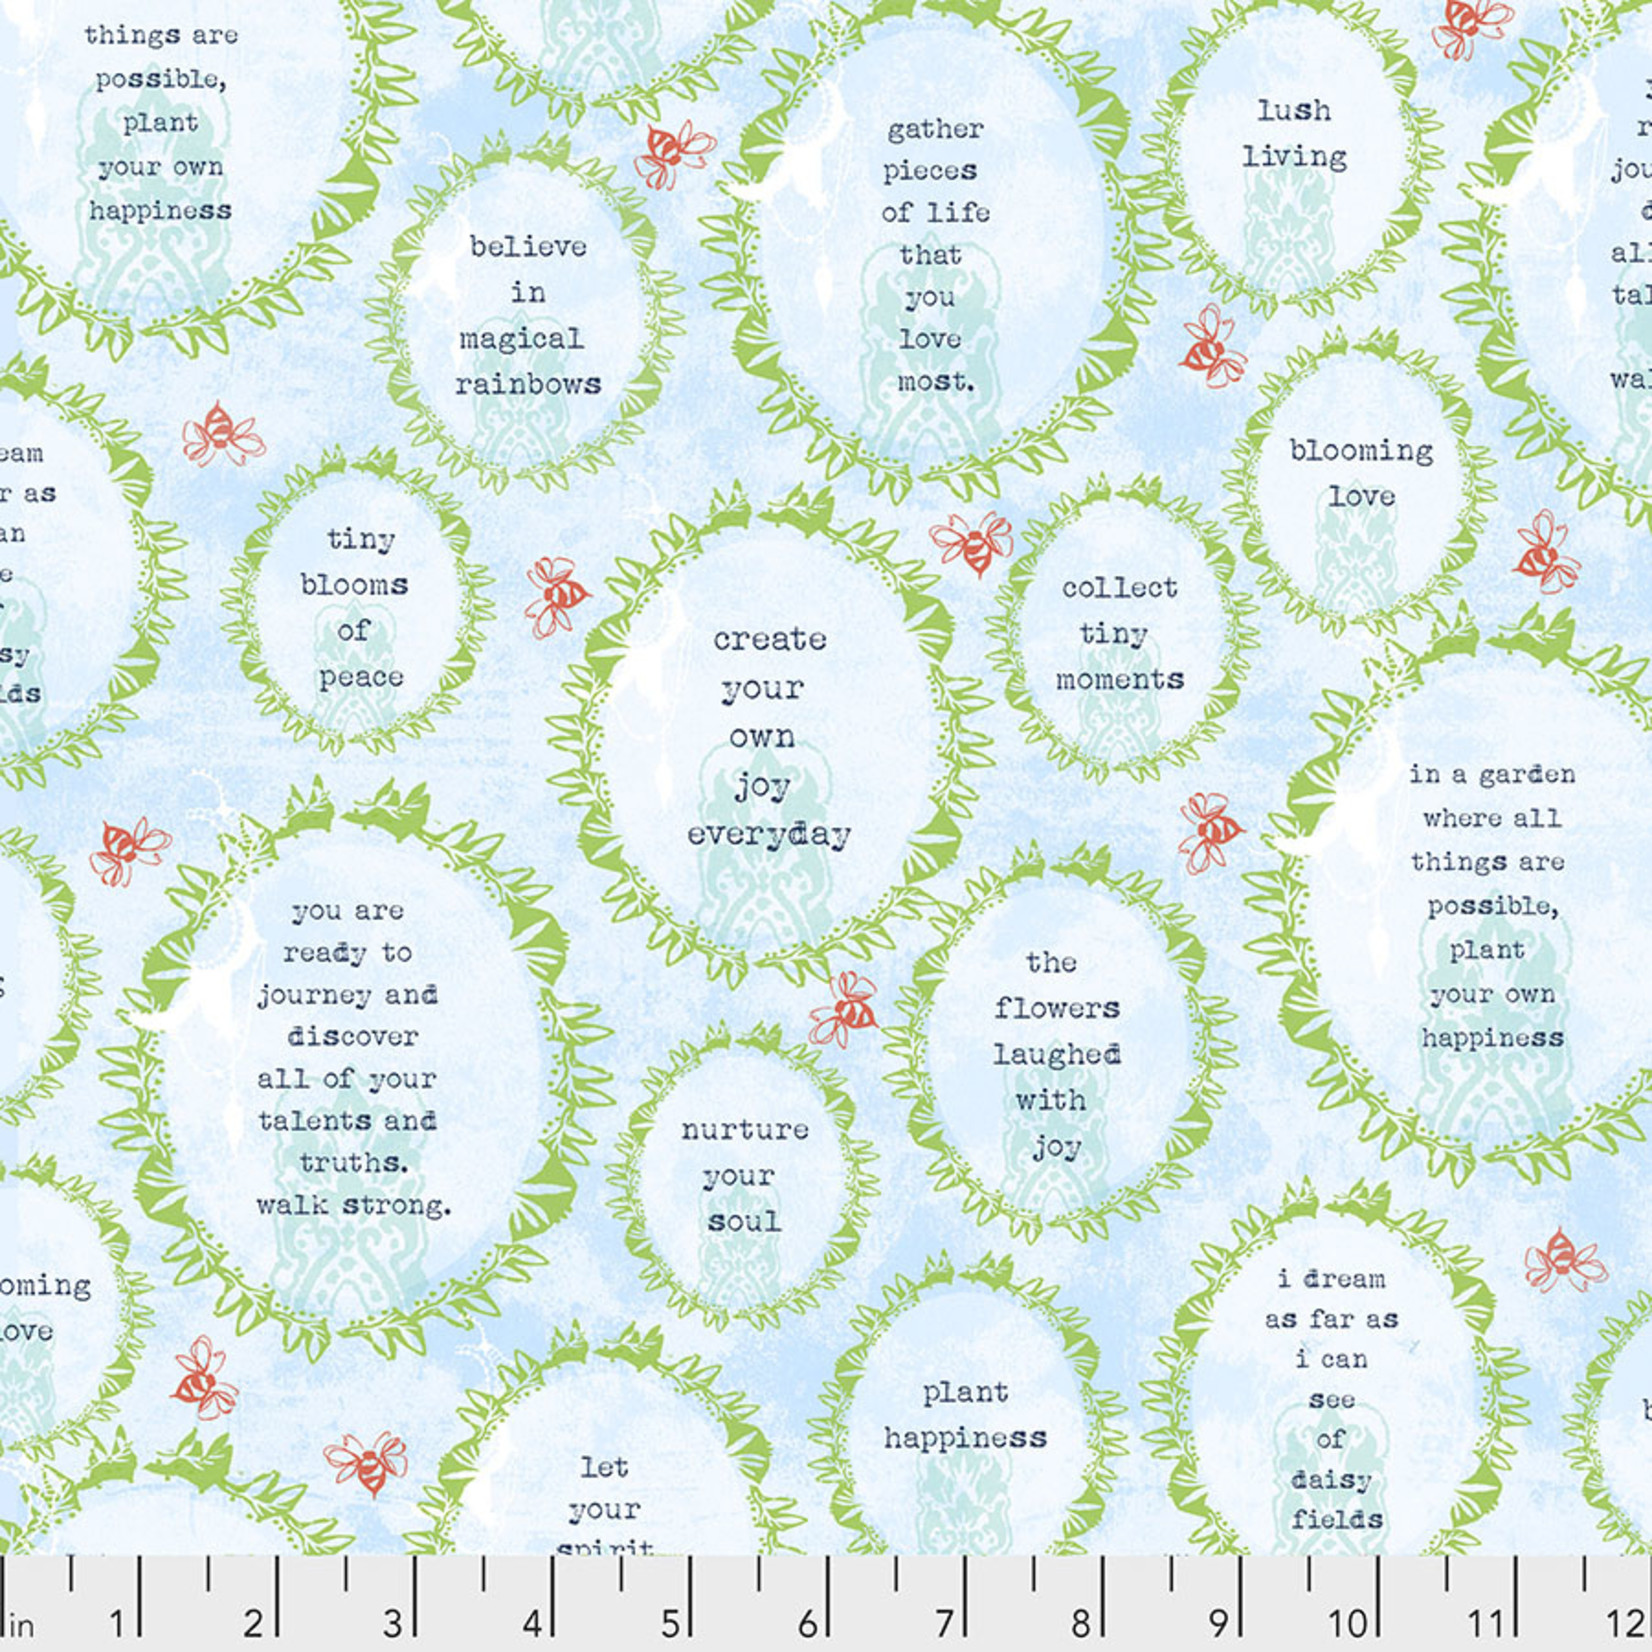 FREE SPIRIT FAT QUARTER BUNDLE - SPIRIT OF THE GARDEN 10 PCS